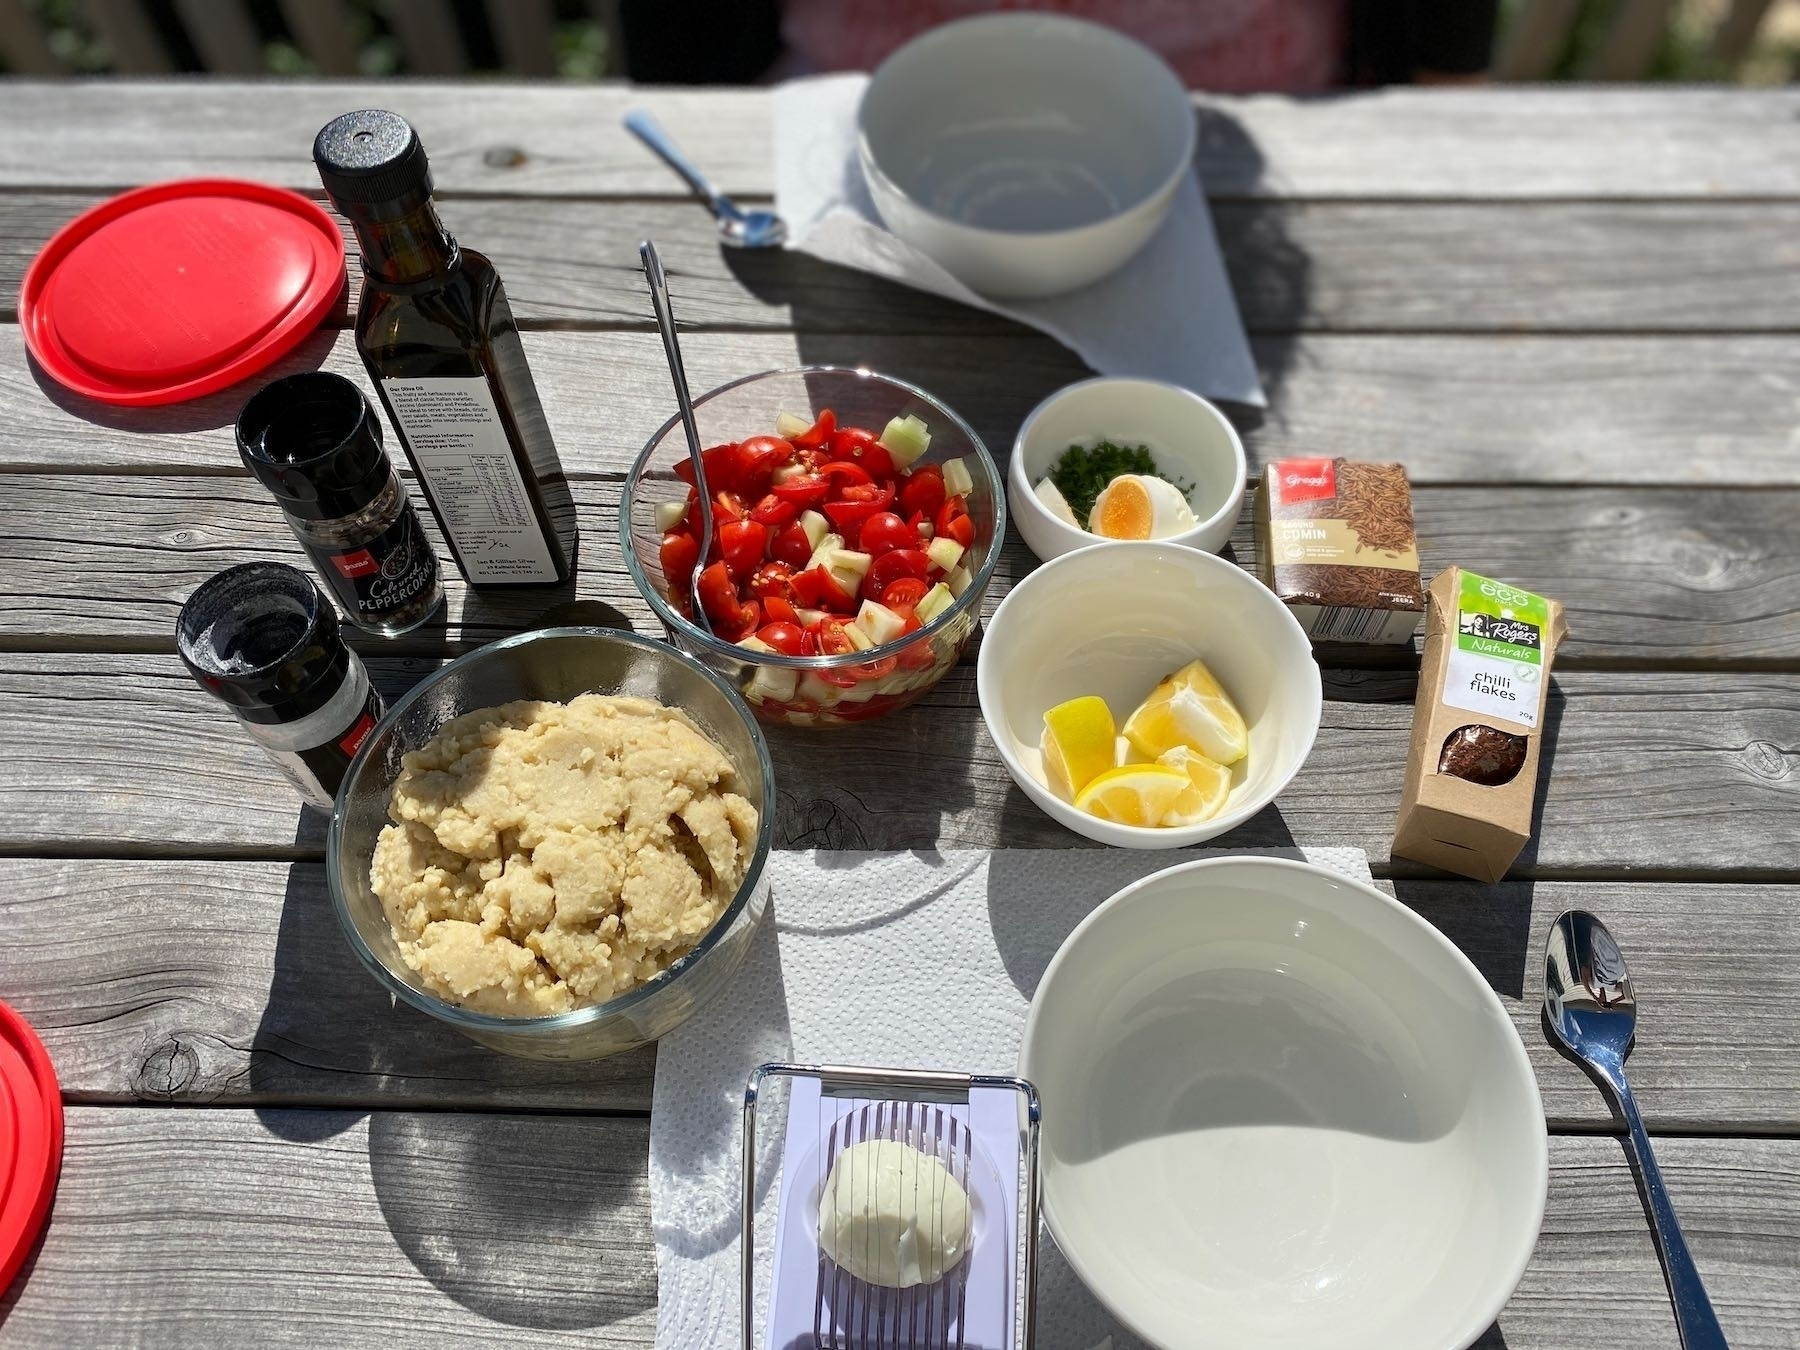 Breakfast ingredients spread on a picnic table.